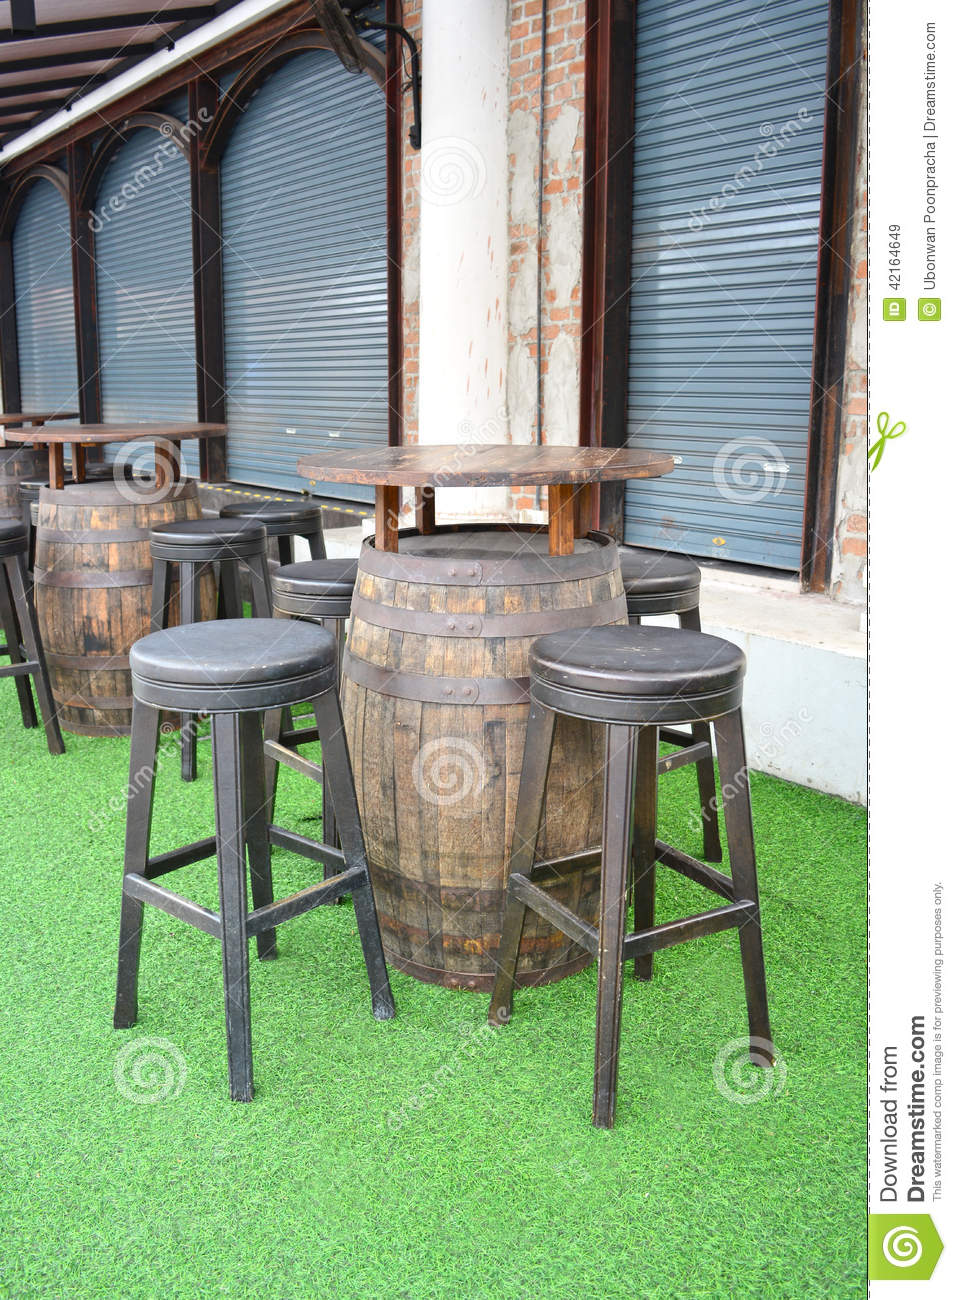 Wooden Barrel Table And Chairs In Empty Beer Garden Stock Photo